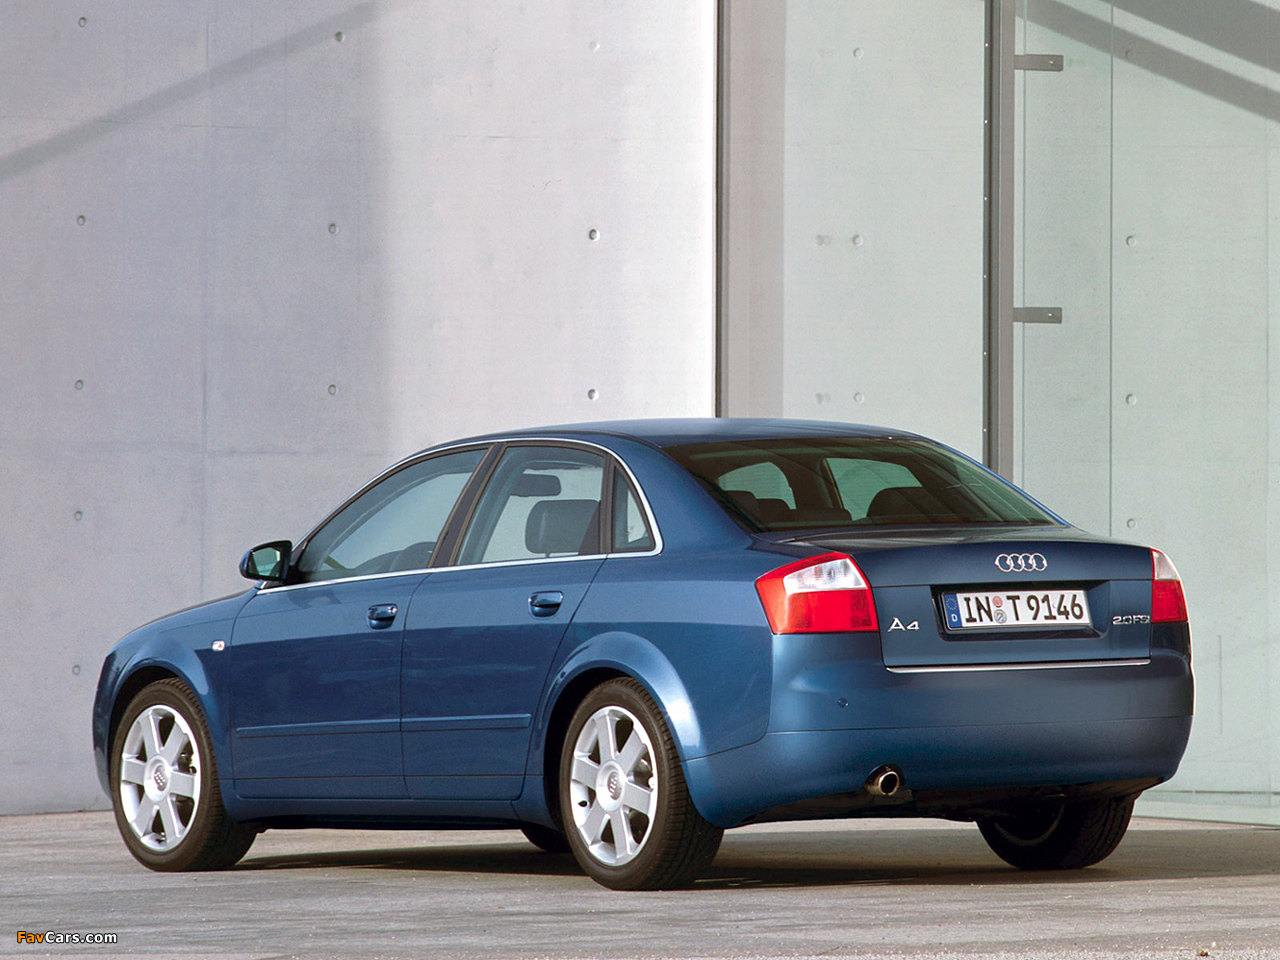 2002 Audi A4 Reviews and Rating | Motortrend